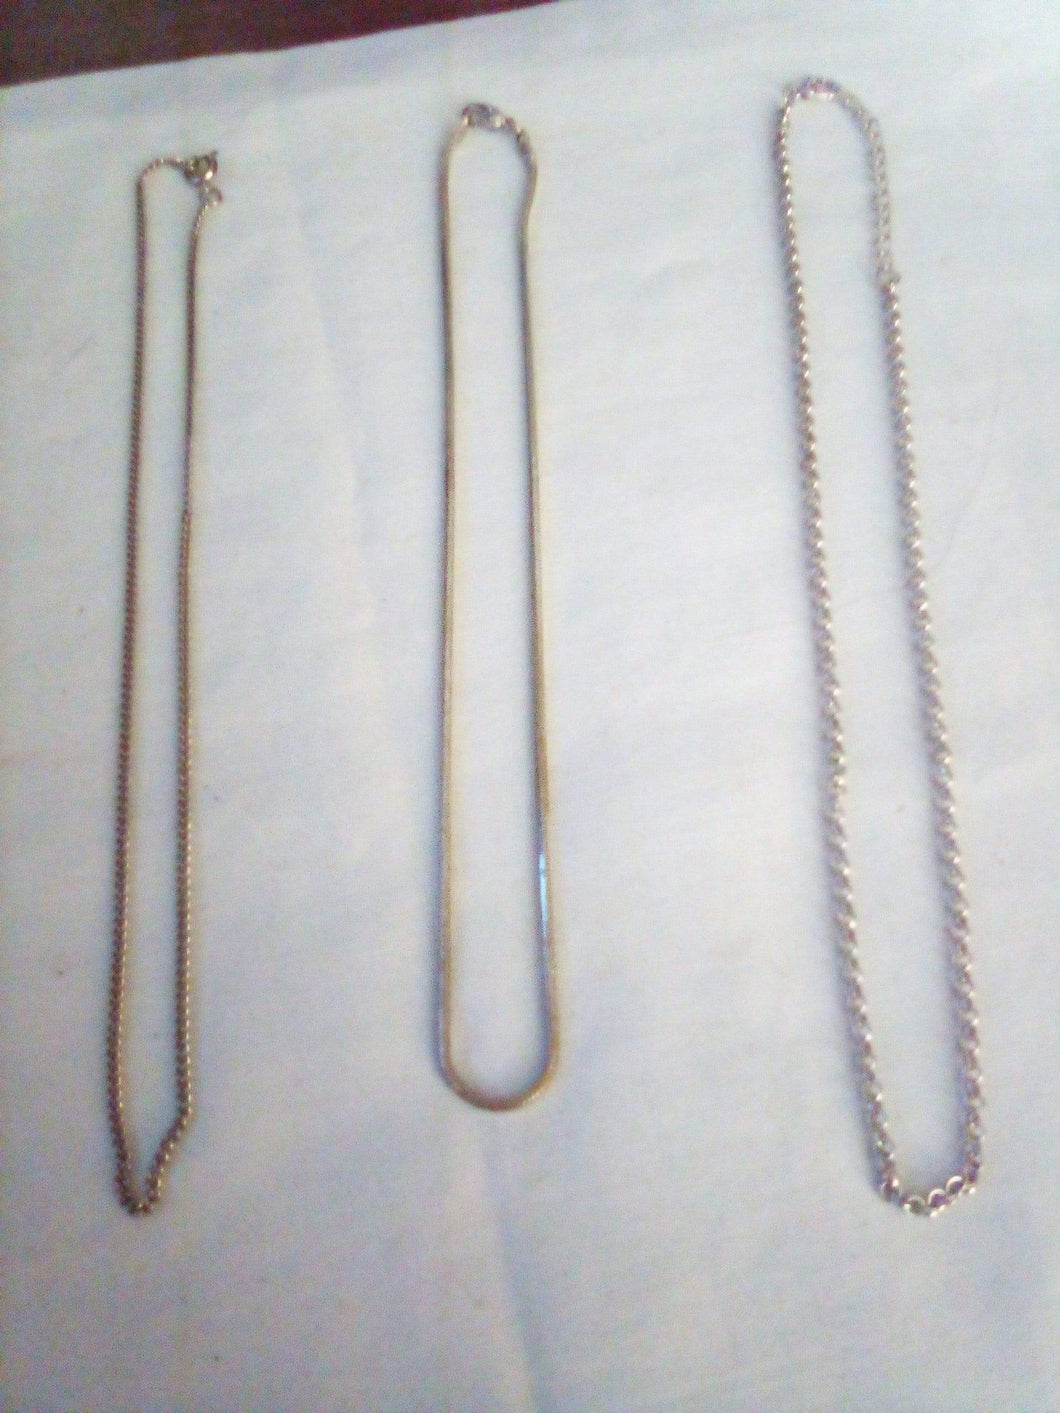 Lot of 3 silver tone chains - B&P'sringsnthings